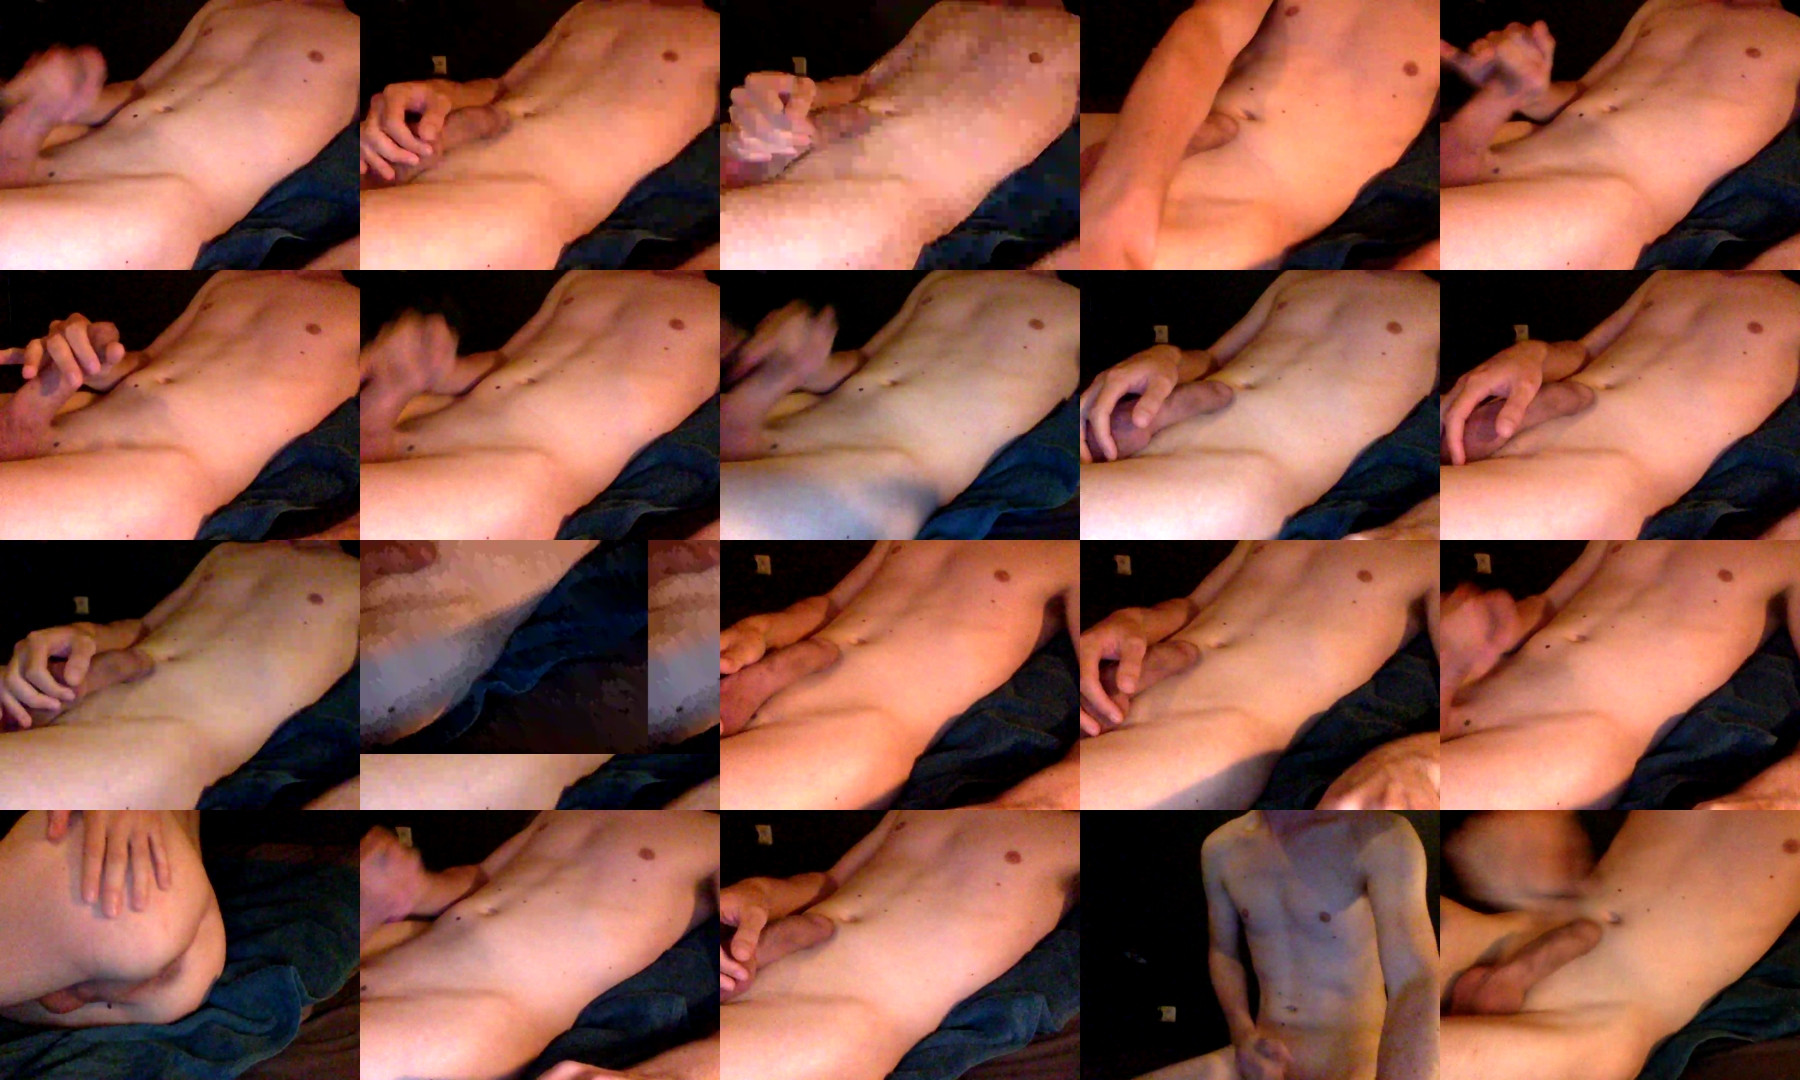 _tommy96 Download CAM SHOW @ Cam4 10-05-2021